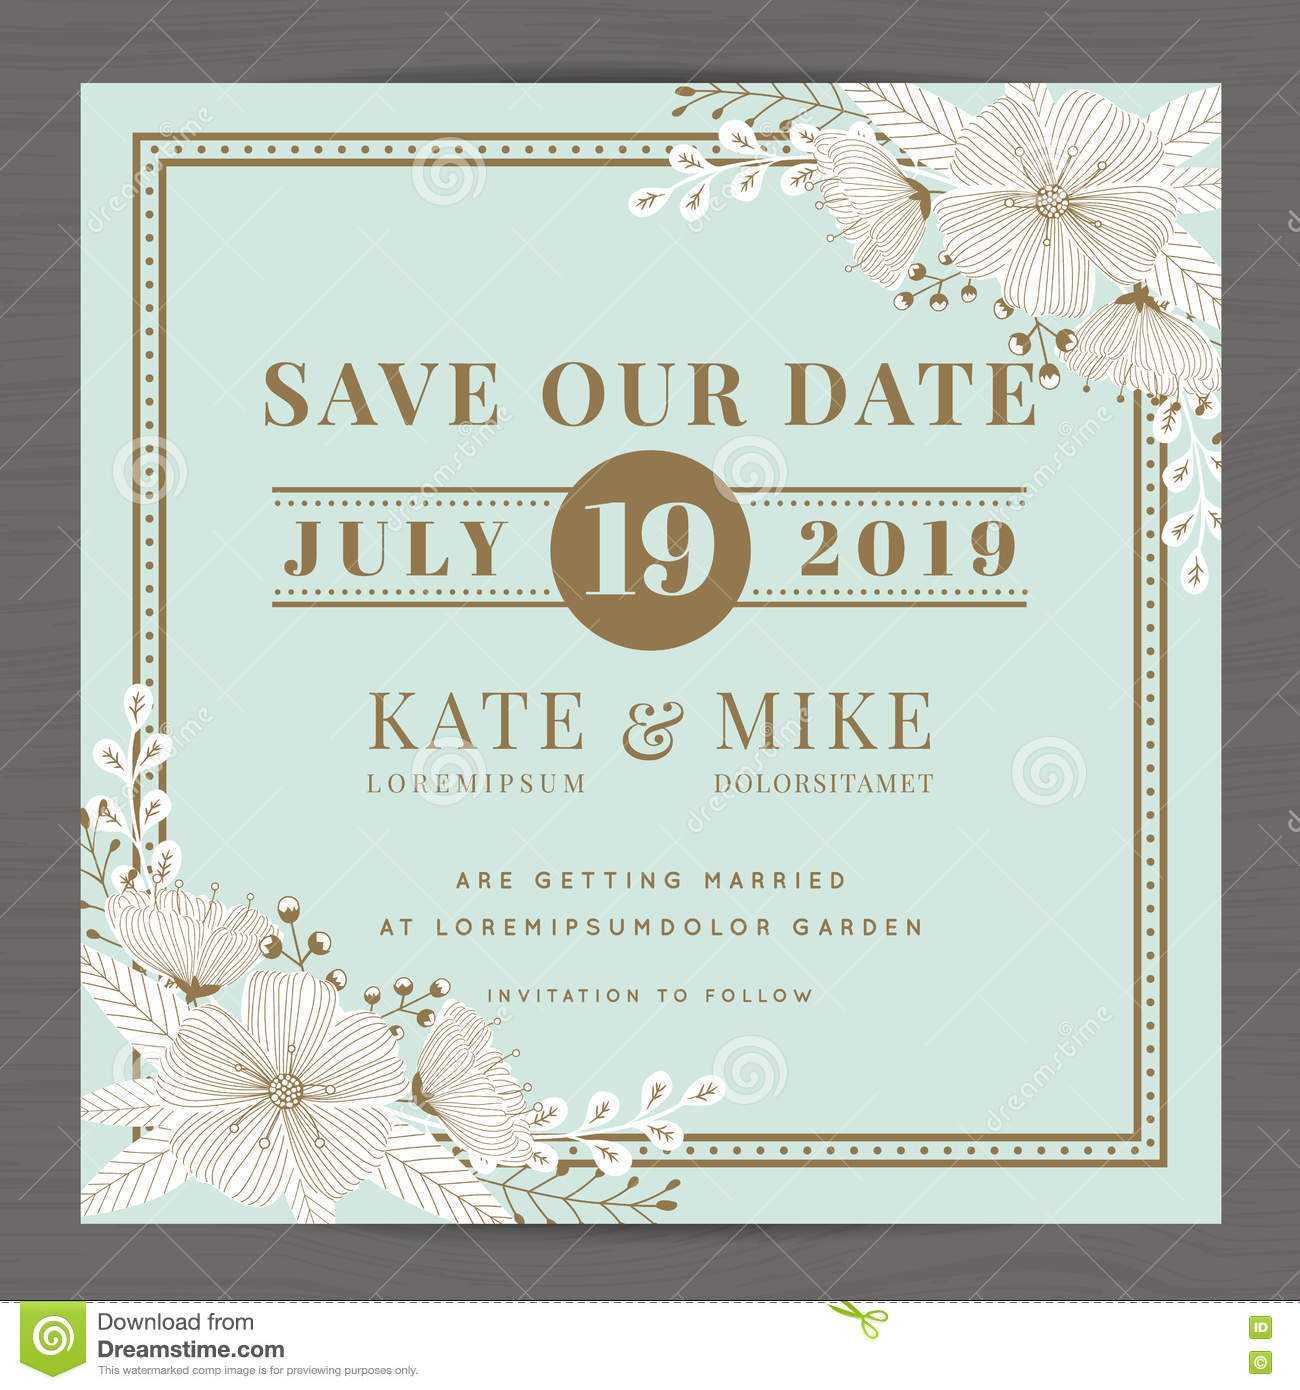 save the date wedding invitation card template with hand drawn flower floral background. Black Bedroom Furniture Sets. Home Design Ideas